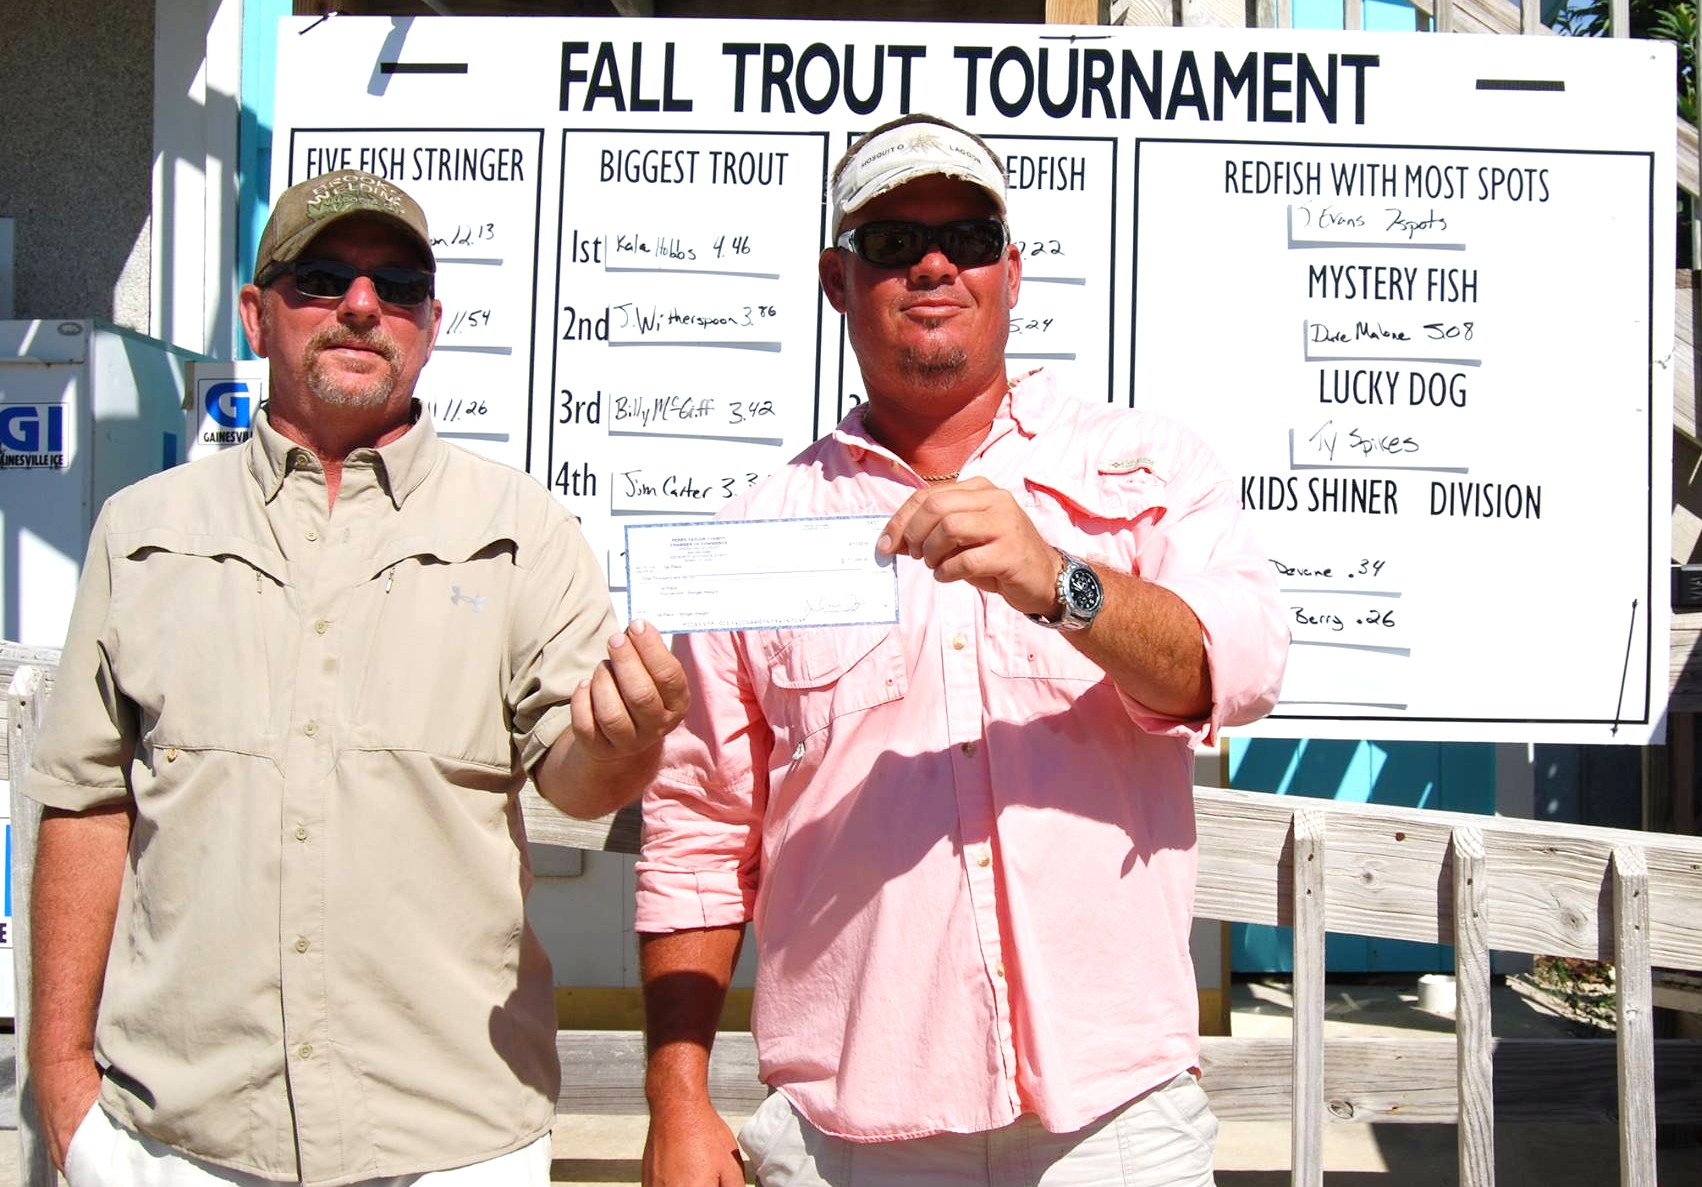 Paul Wilson and Jason Witherspoon accepting a $1000 check for first place in the 3rd annual Taylor County Fall Trout tourney Saturday, September 13 .